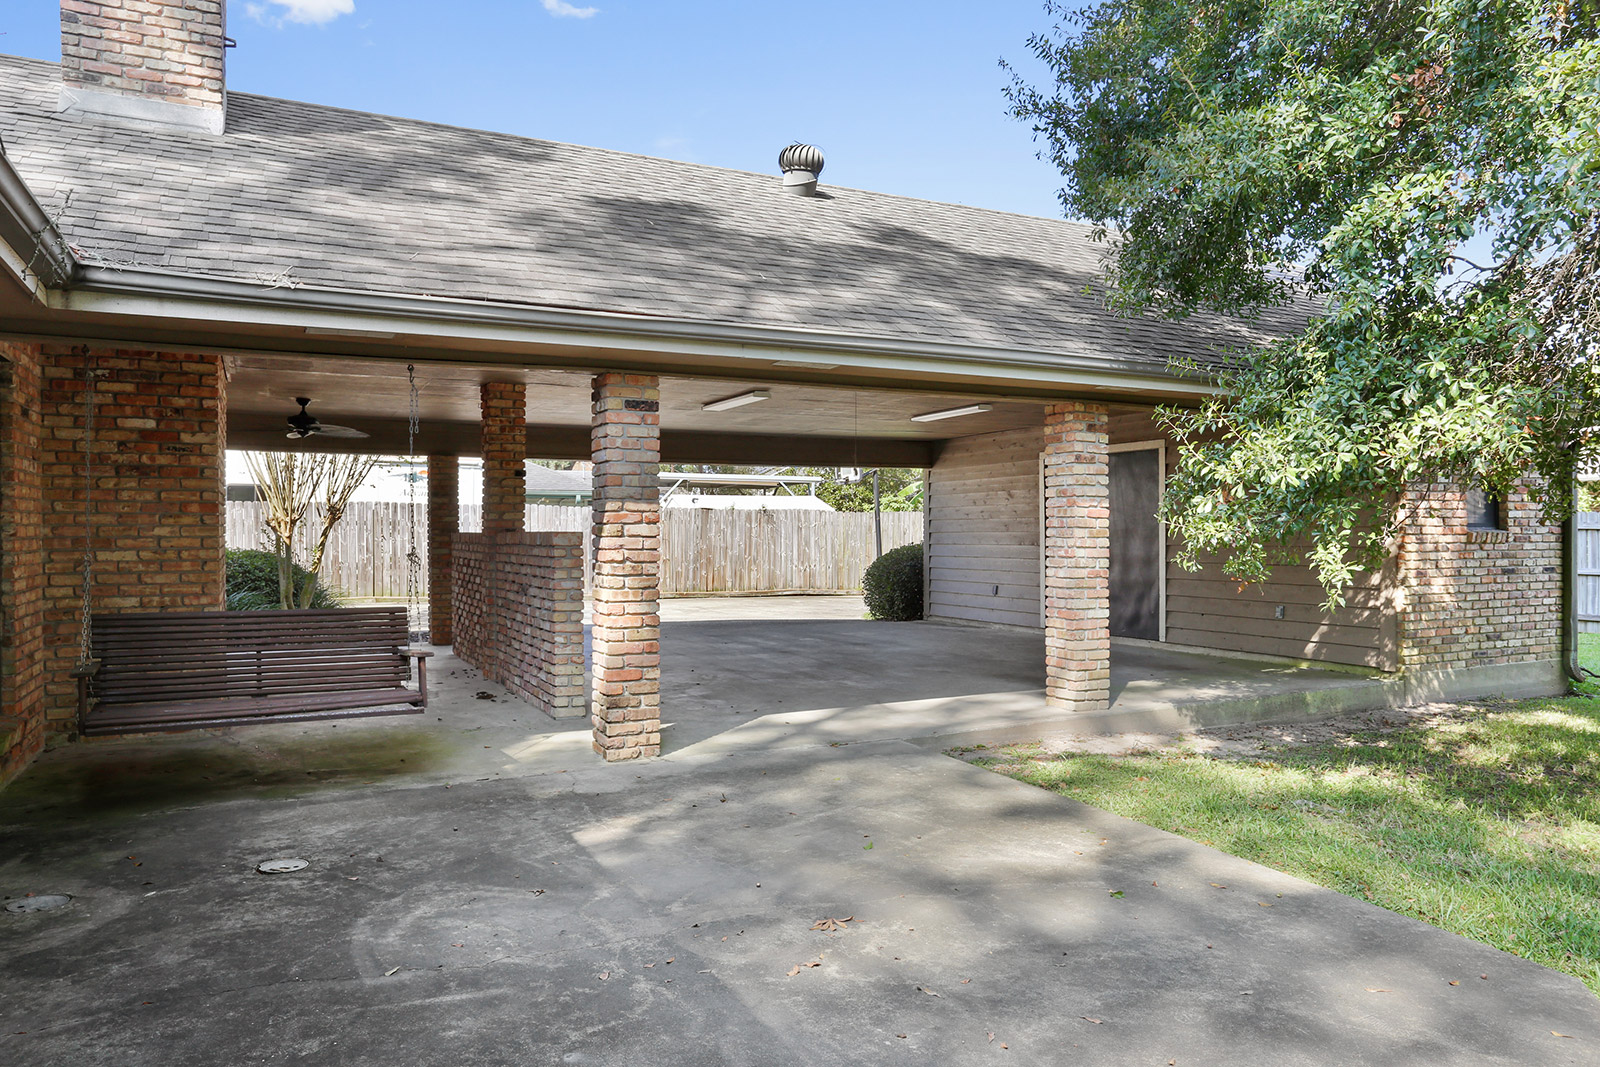 Maplewood Gem 13 Poinsetta Rd Sulphur Chad Carroll Lake Charles Real Estate